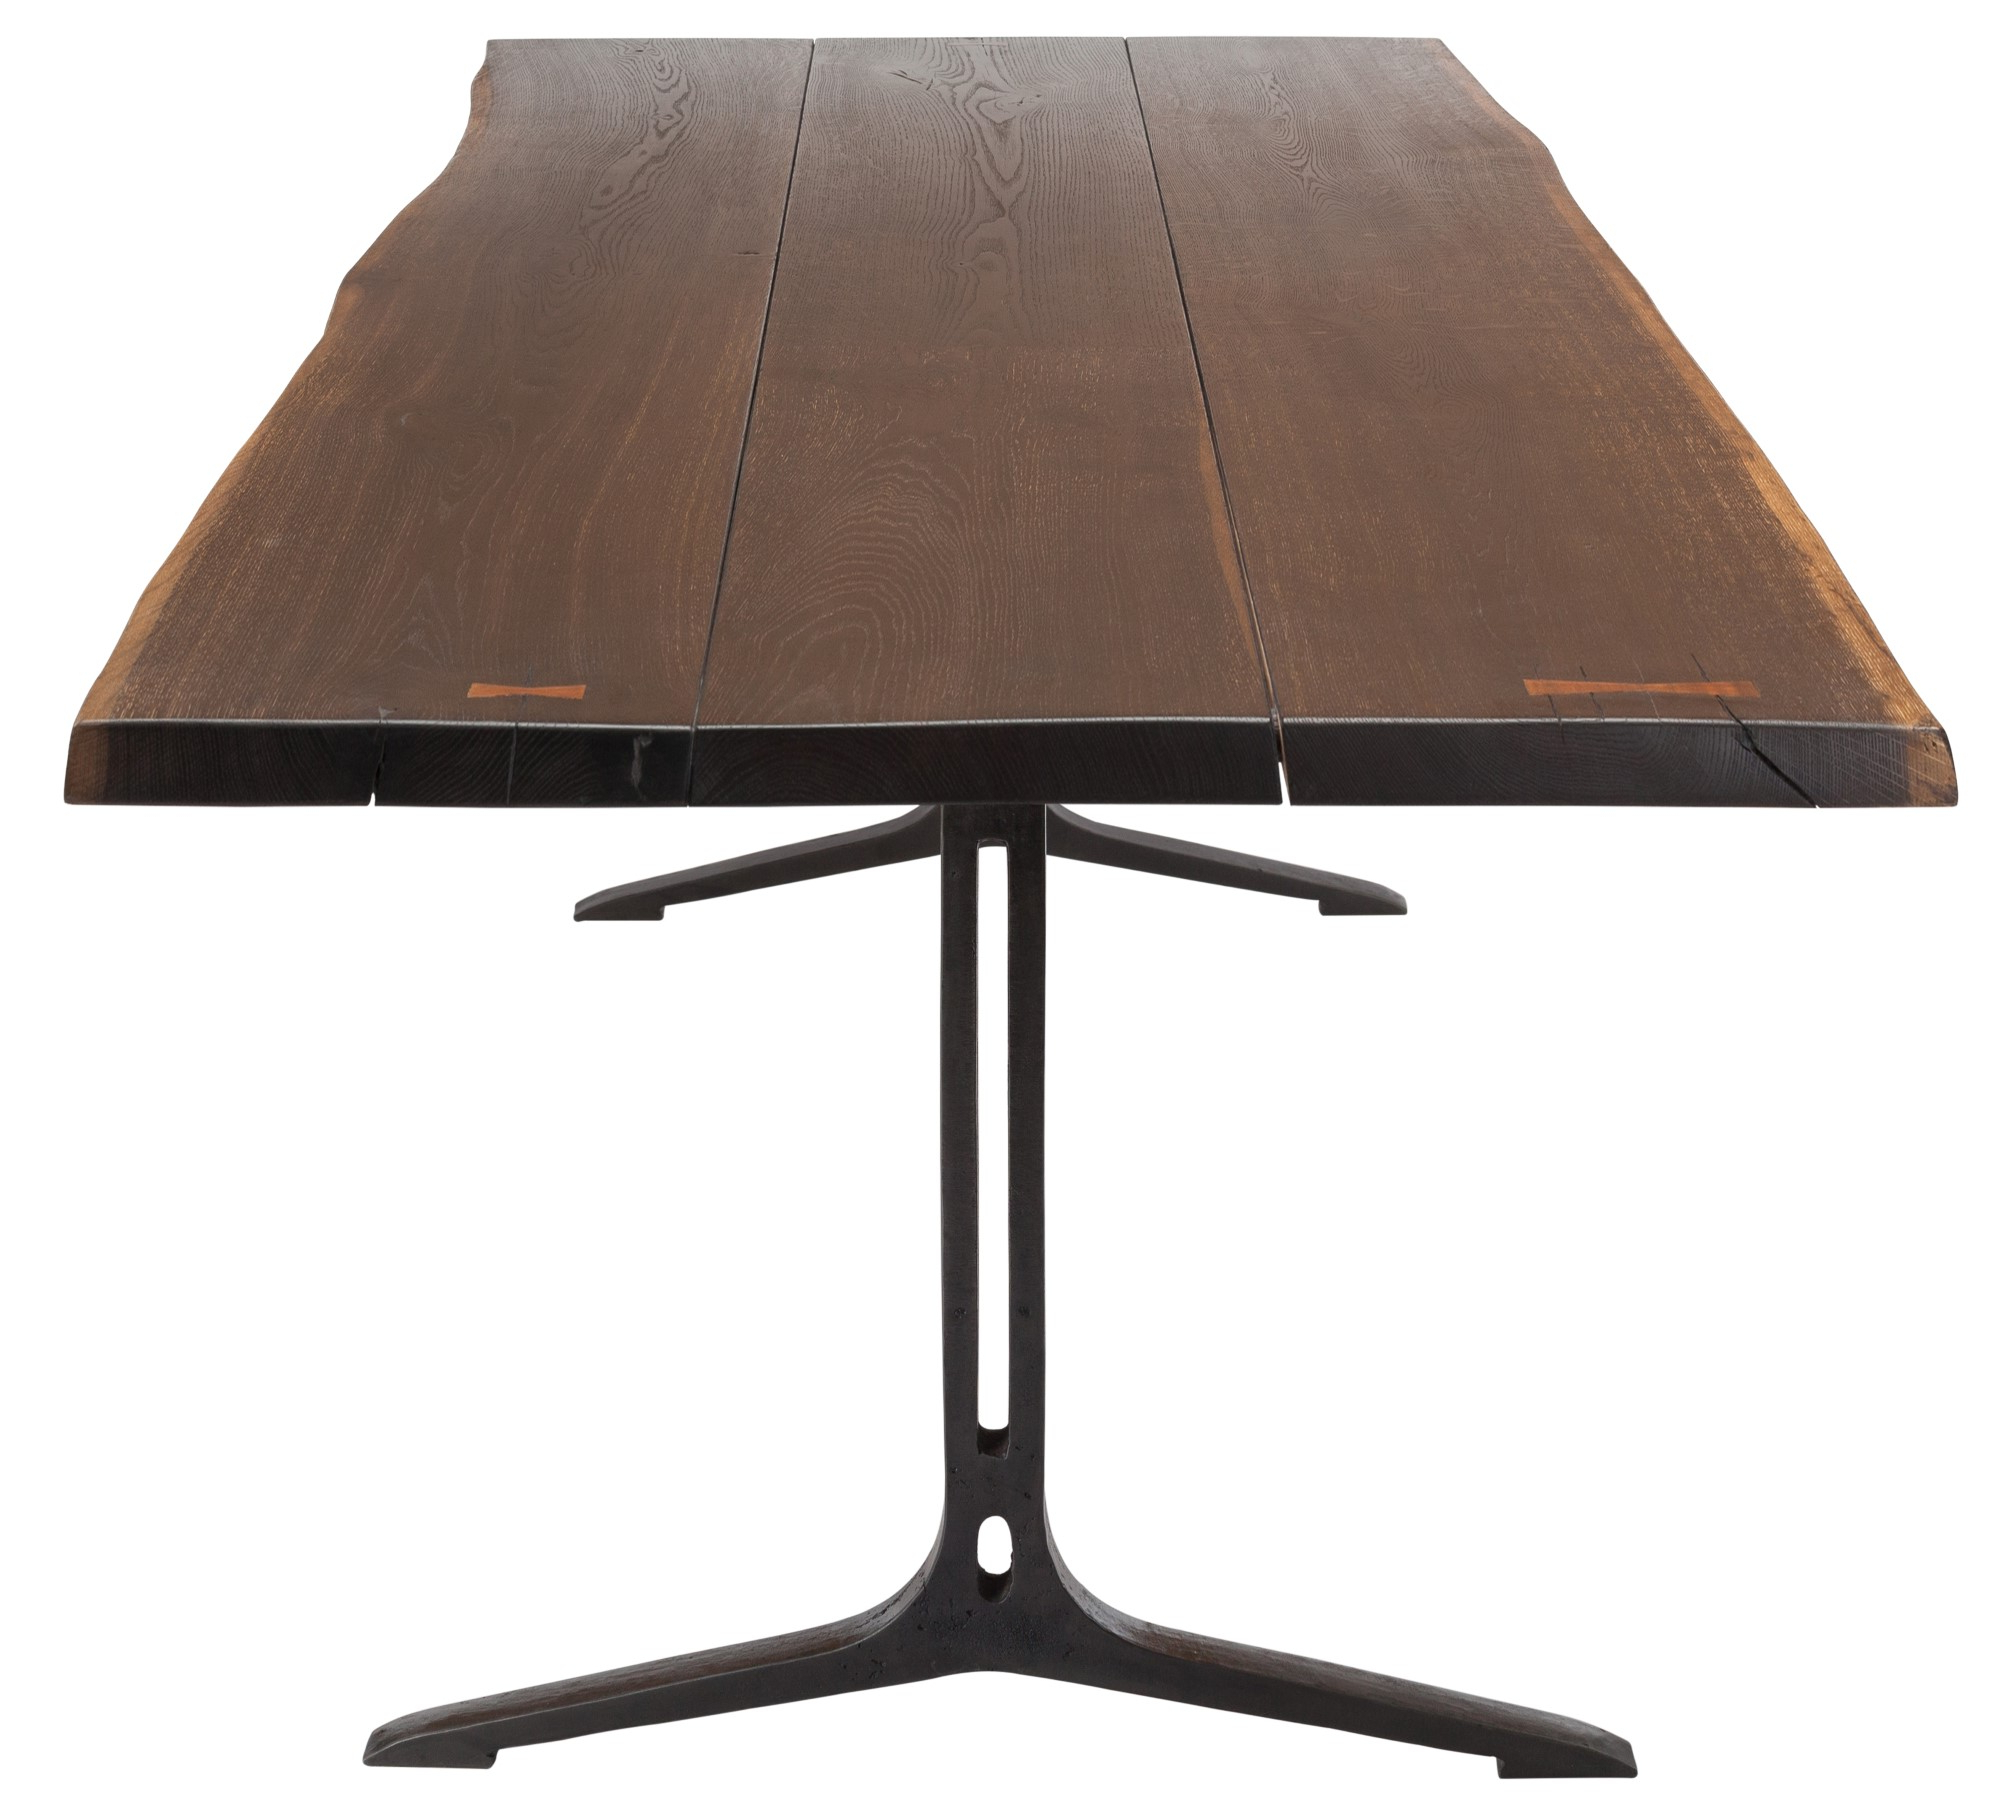 Well Liked Dining Tables In Smoked Seared Oak Regarding Samara Live Edge Dining Table (medium – Seared Oak With Black Base) (View 7 of 30)